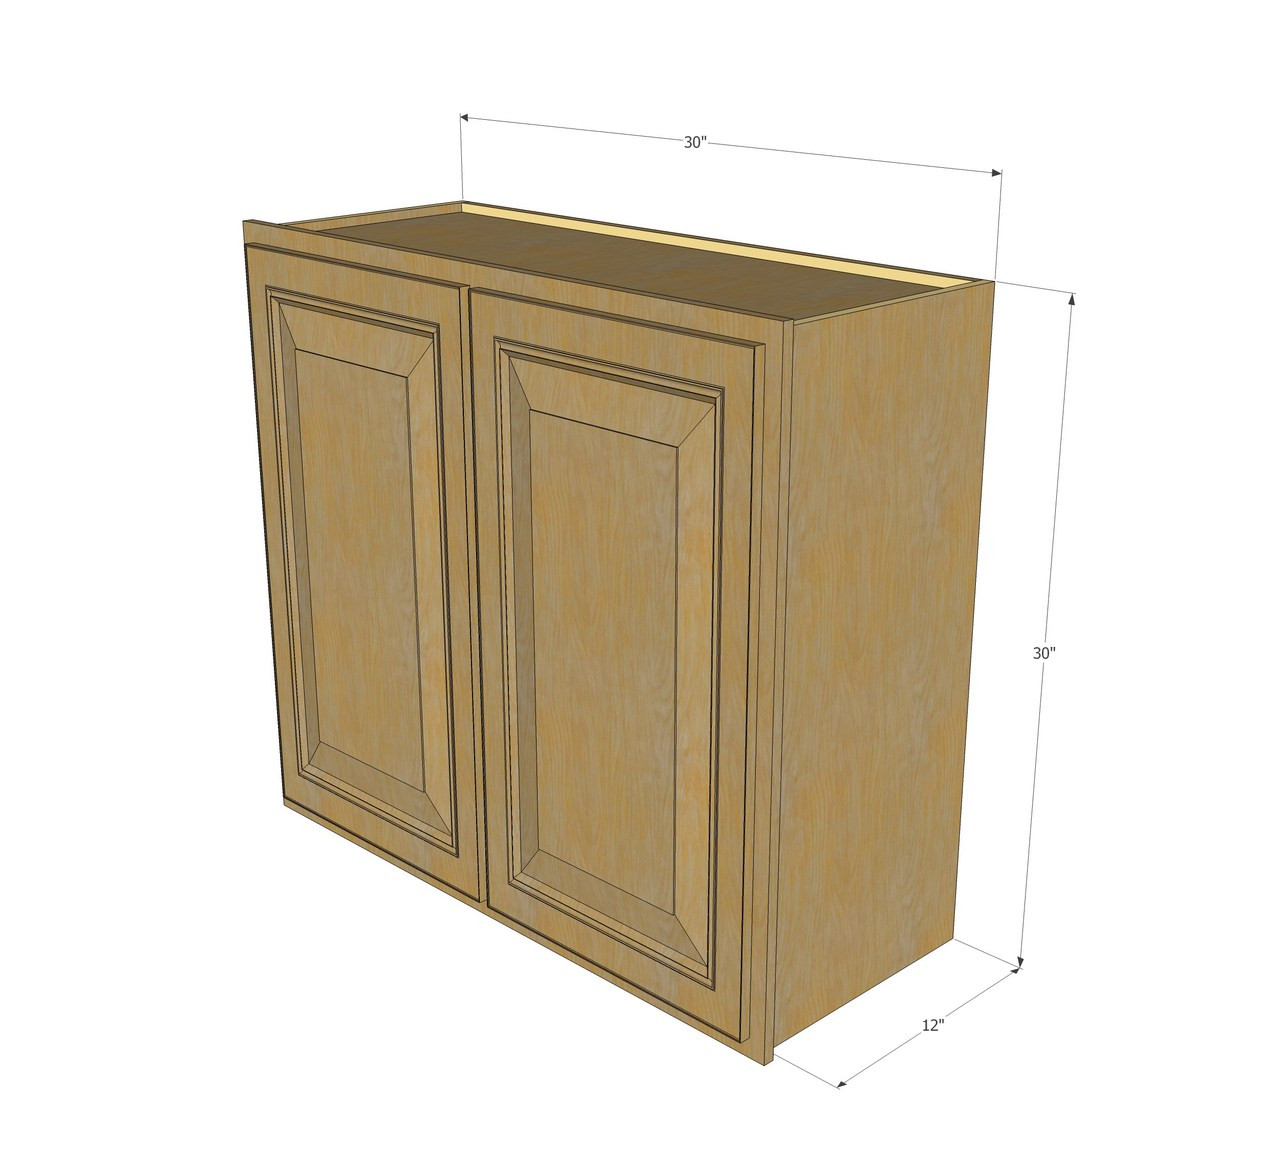 Large Double Door Regal Oak Wall Cabinet 30 Inch Wide X 30 Inch High Kitchen Cabinet Warehouse